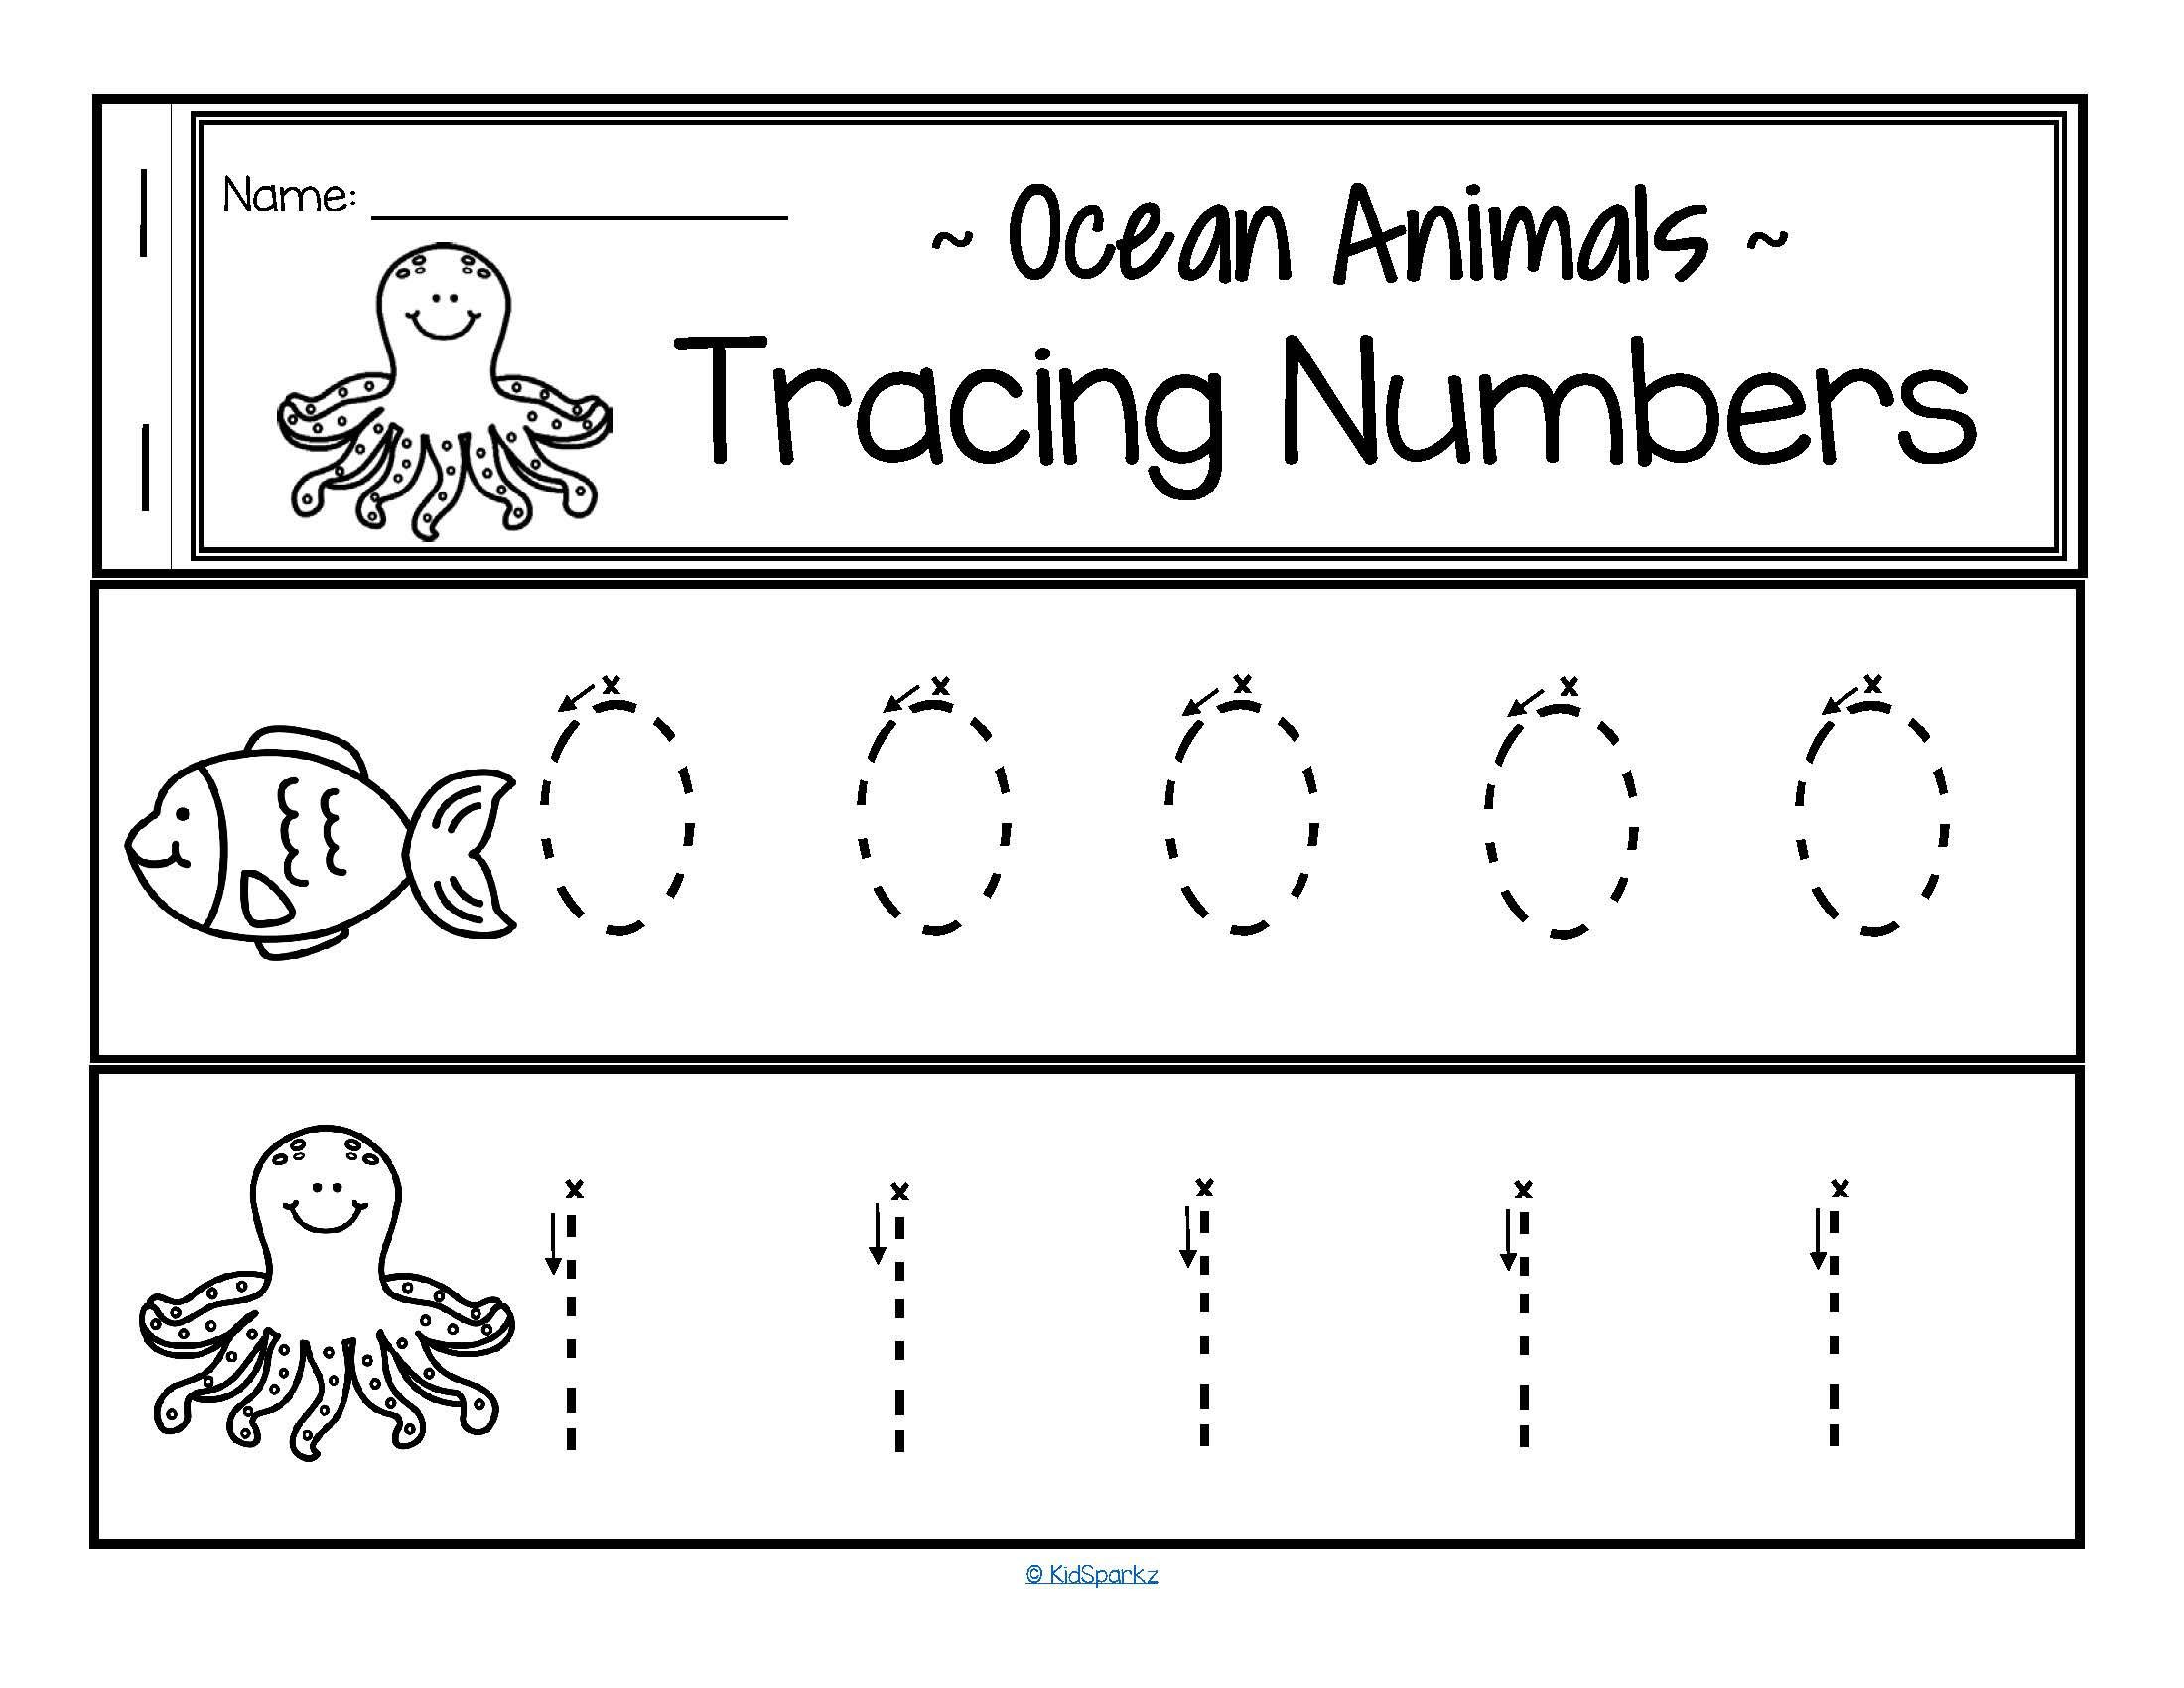 Preschool Number Tracing Tracing Numbers 0 20 for Beginning Writers Ocean Animals